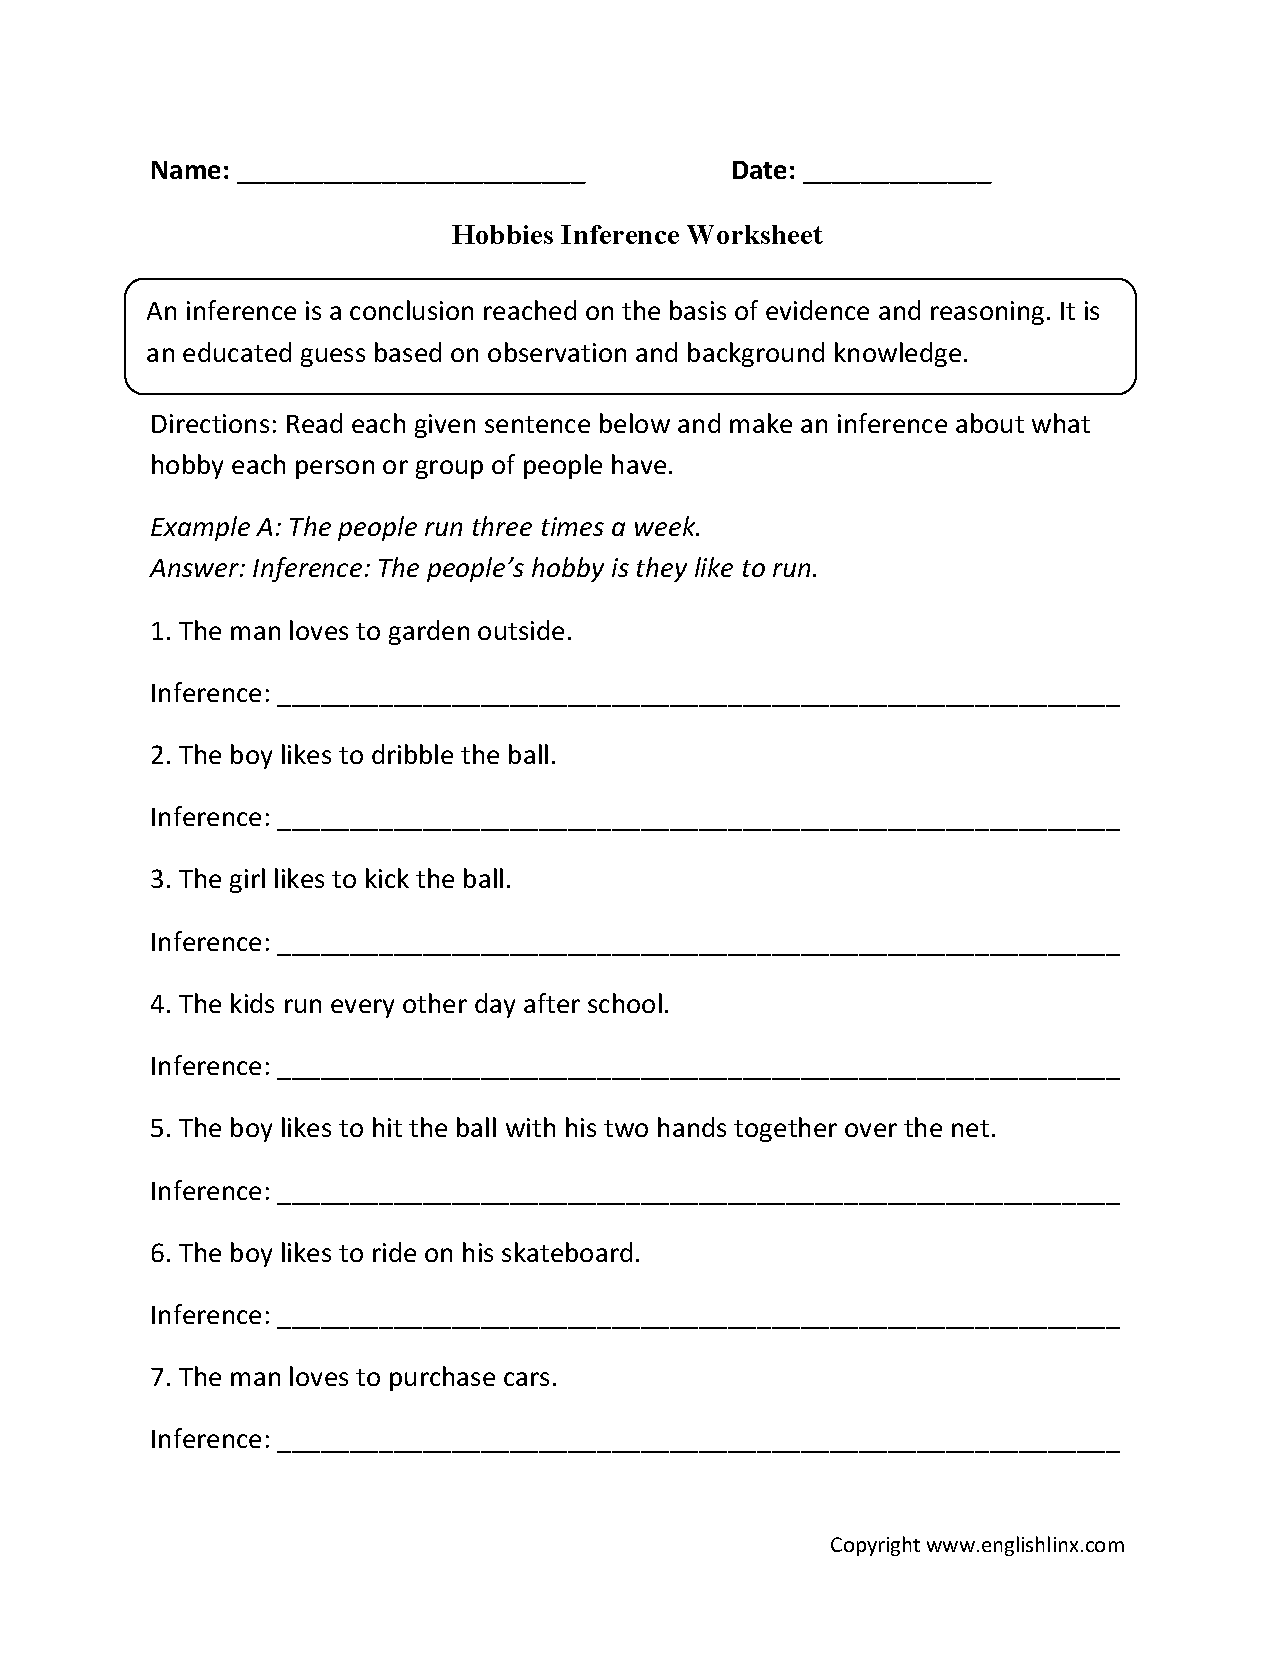 Inference Worksheets | Hobbies Inference Worksheets